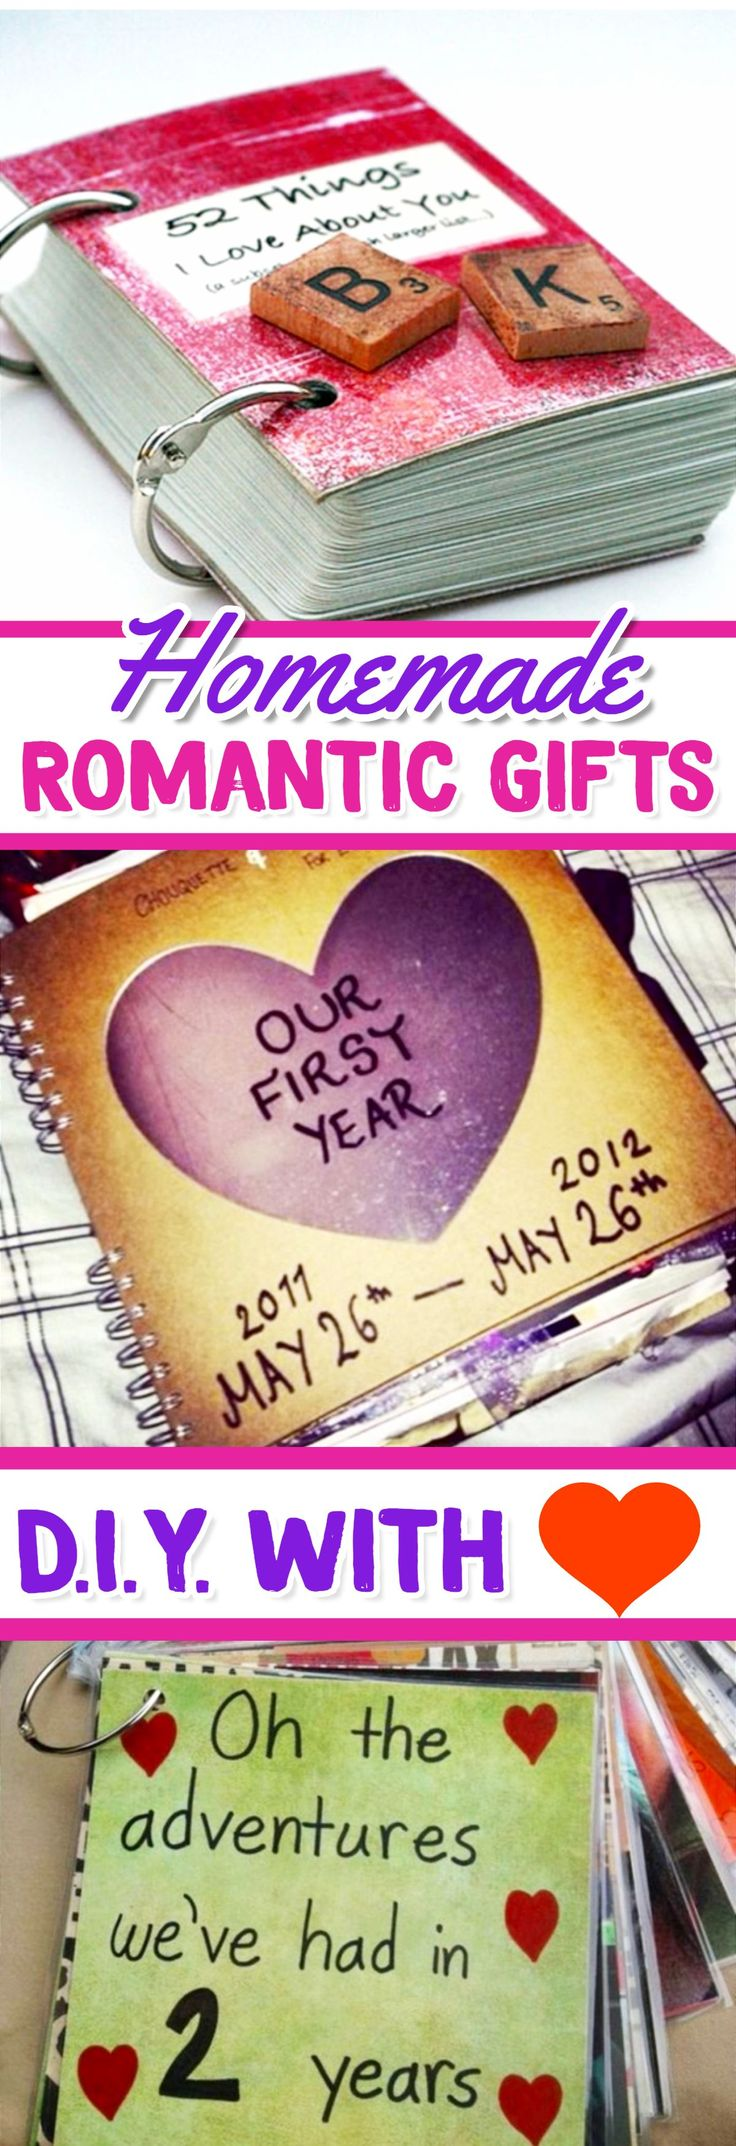 Homemade Romantic Gifts - DIY gifts for him or her ideas we love #ValentinesDayCrafts #romanticgifts #giftsforher #giftideas #homemadegifts #valentinesday #valentinesdaygiftideas #diygifts